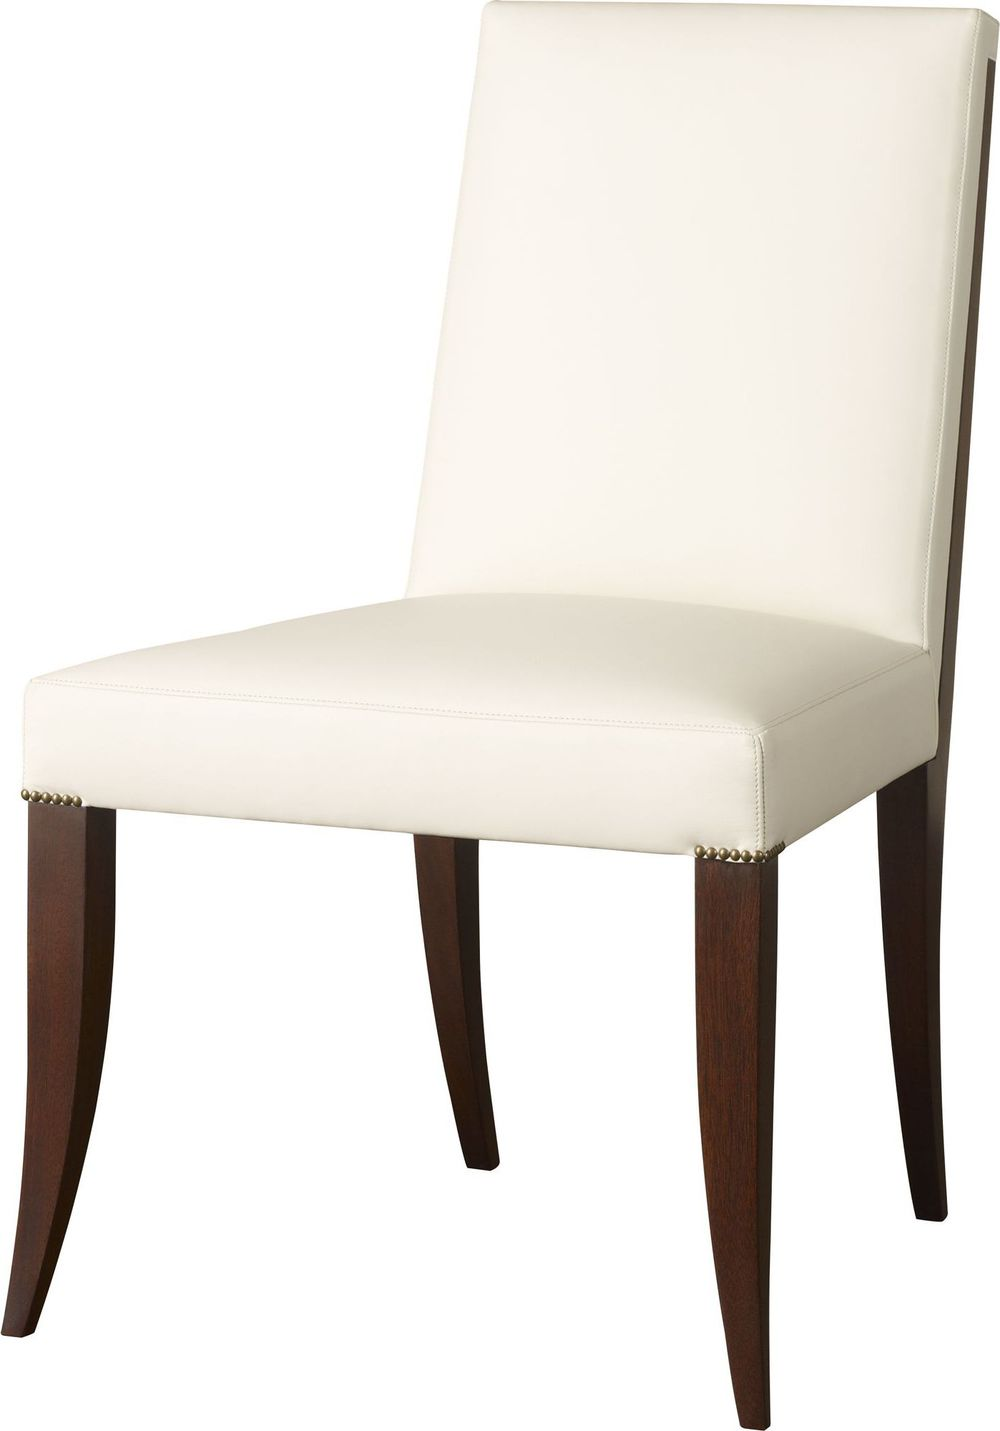 Baker Furniture - Atelier Dining Side Chair